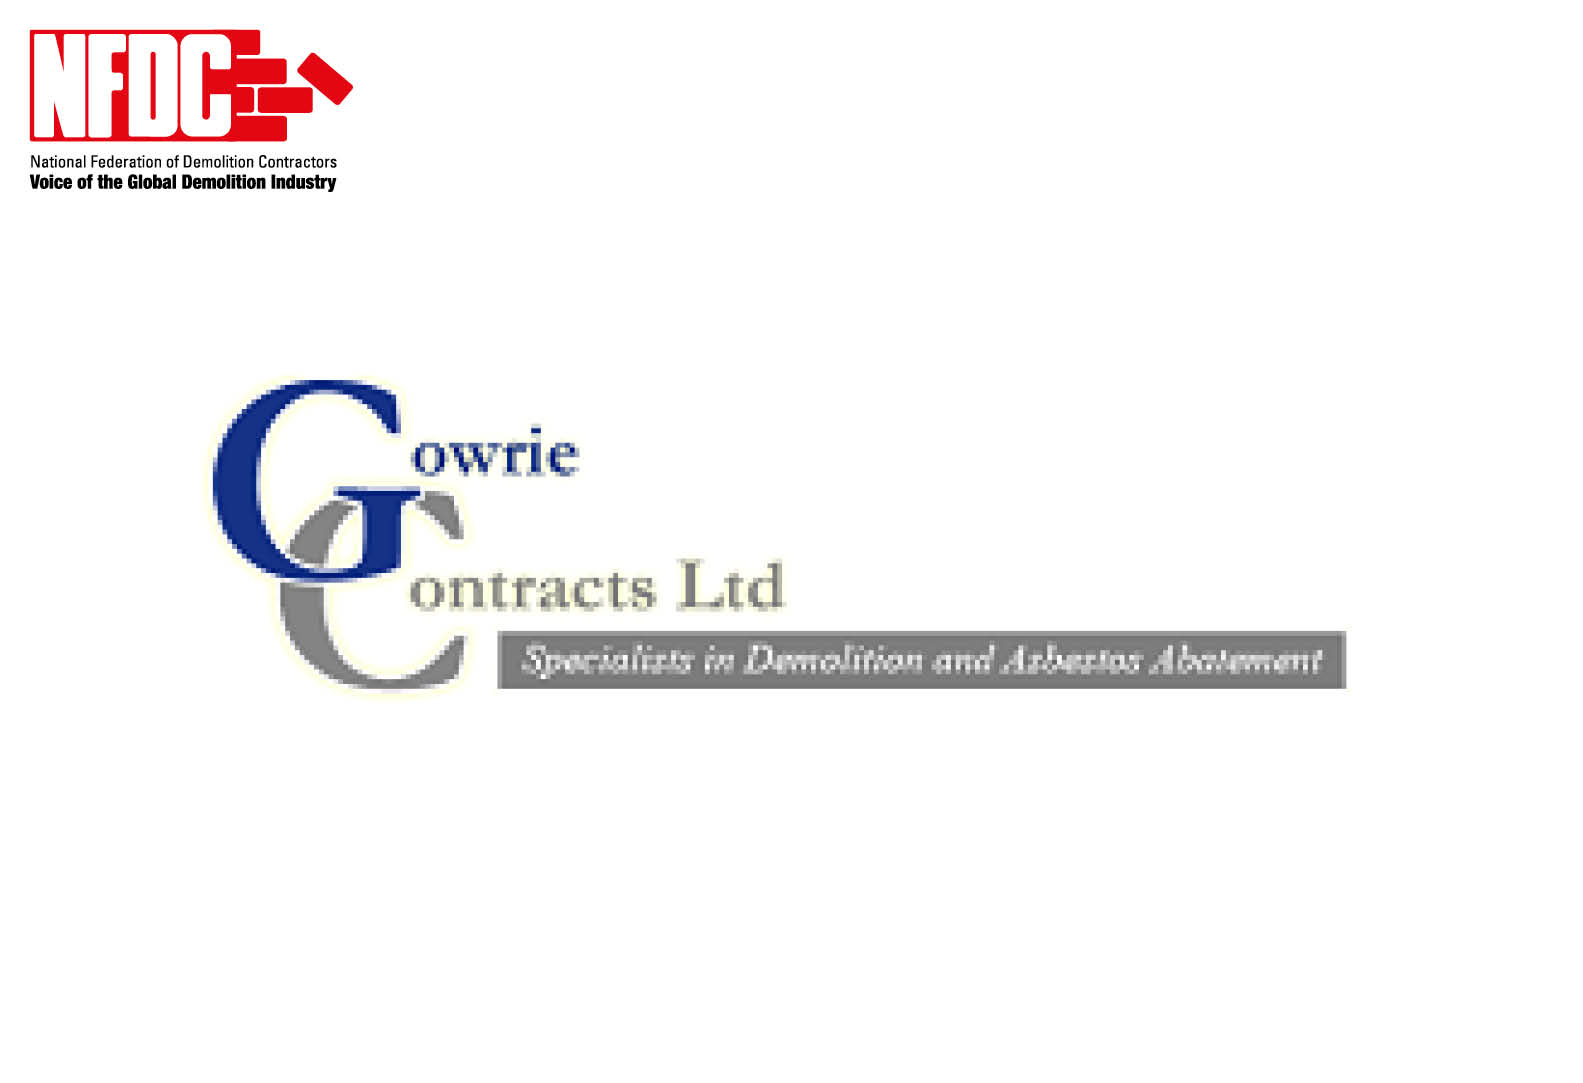 Gowrie Contacts